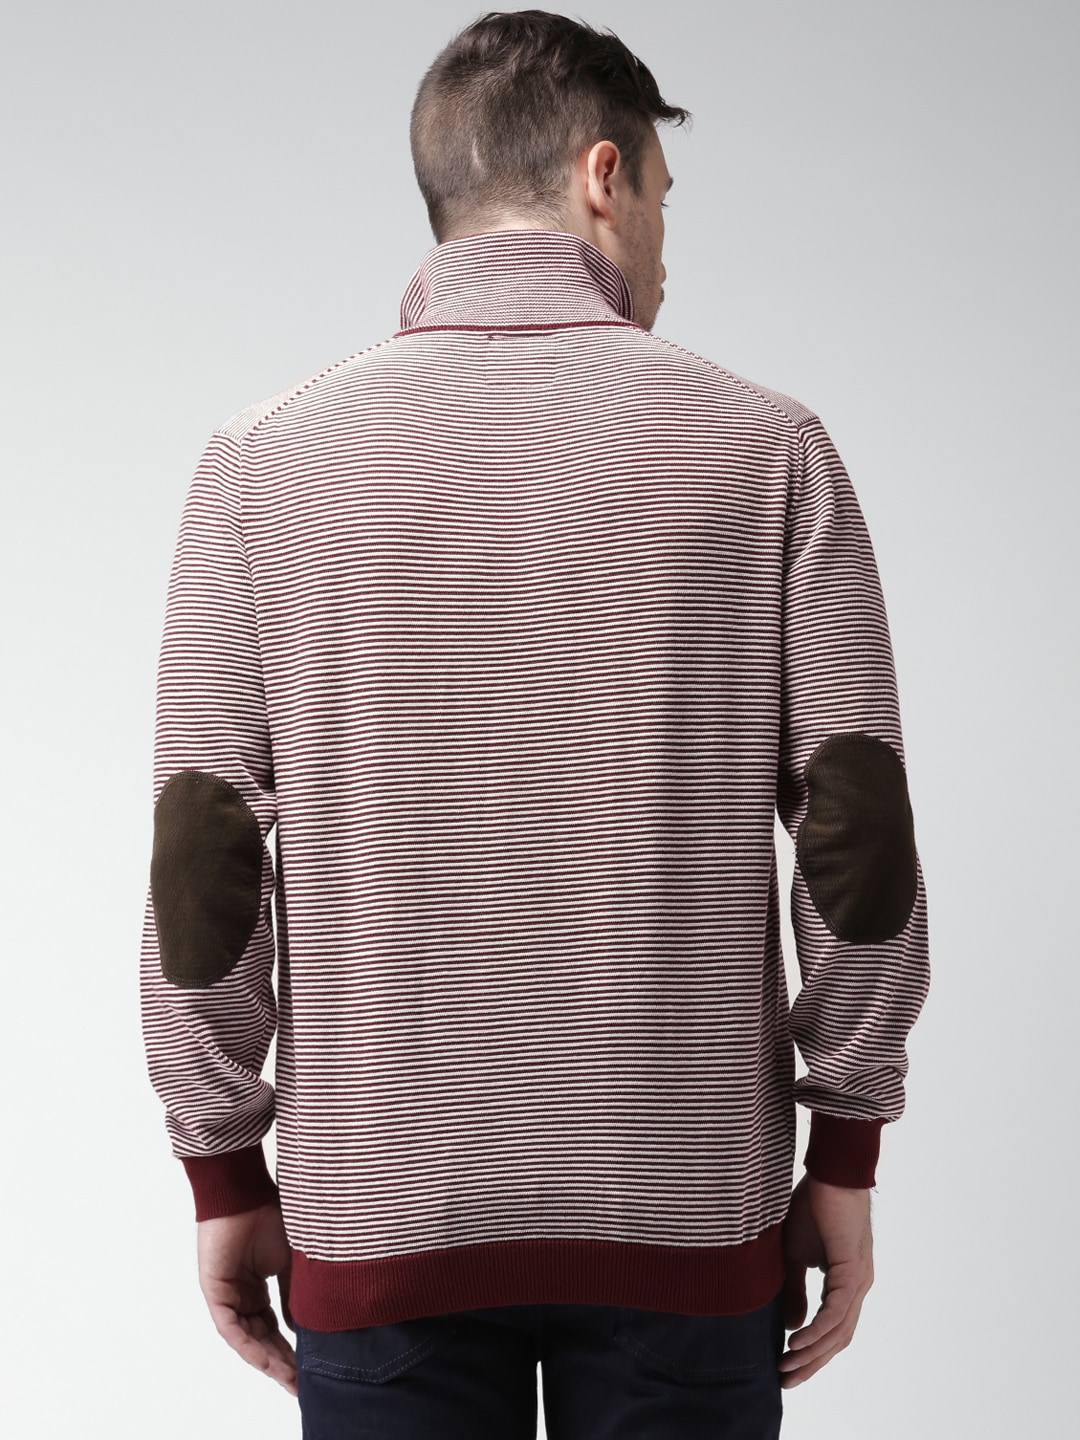 Mast And Harbour Sweaters - Buy Mast And Harbour Sweaters online ...